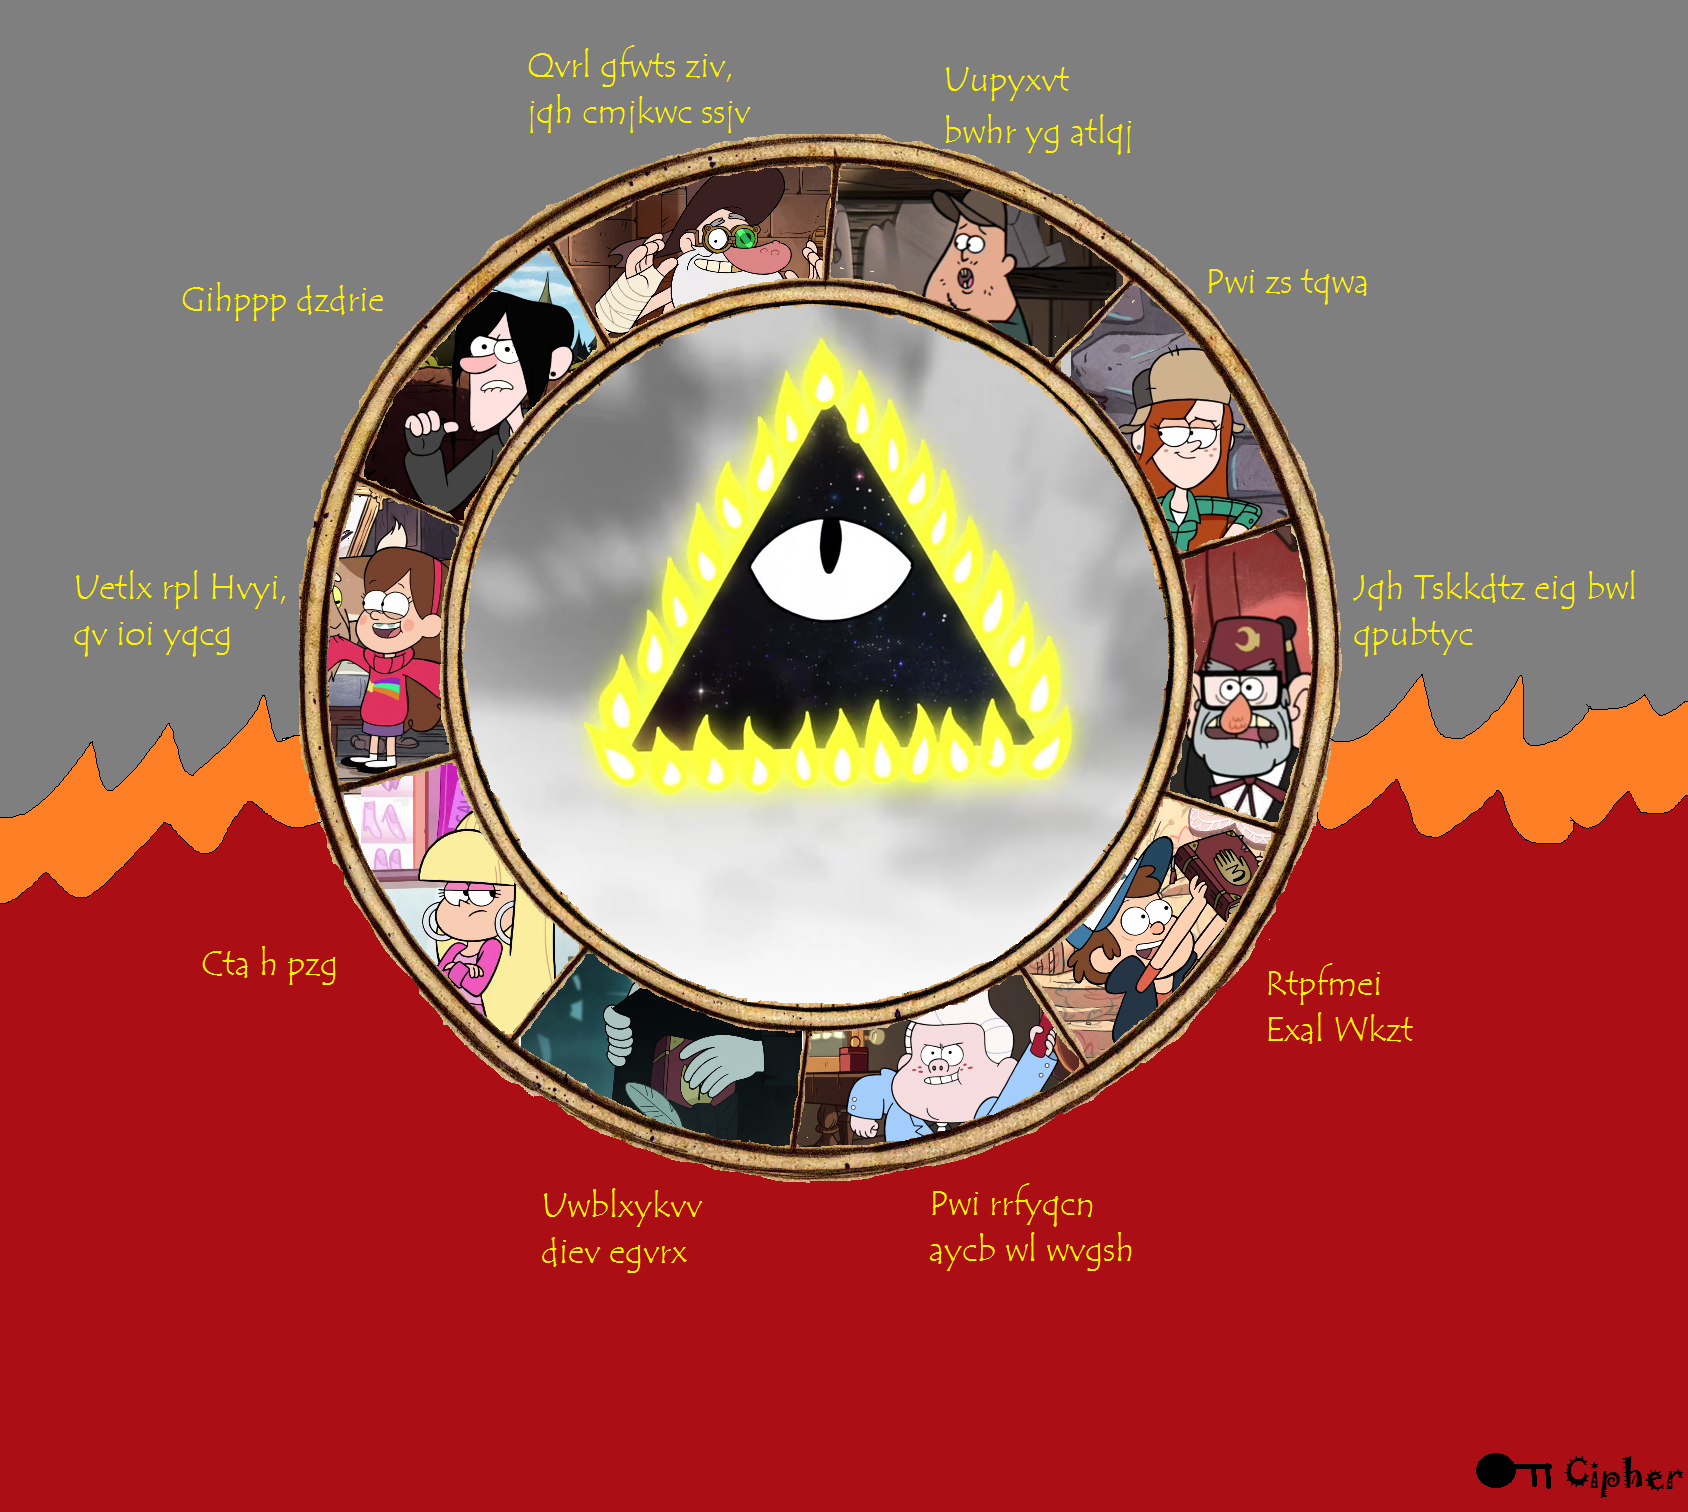 The wheel and its players by cybertoy00 on deviantart the wheel and its players by cybertoy00 biocorpaavc